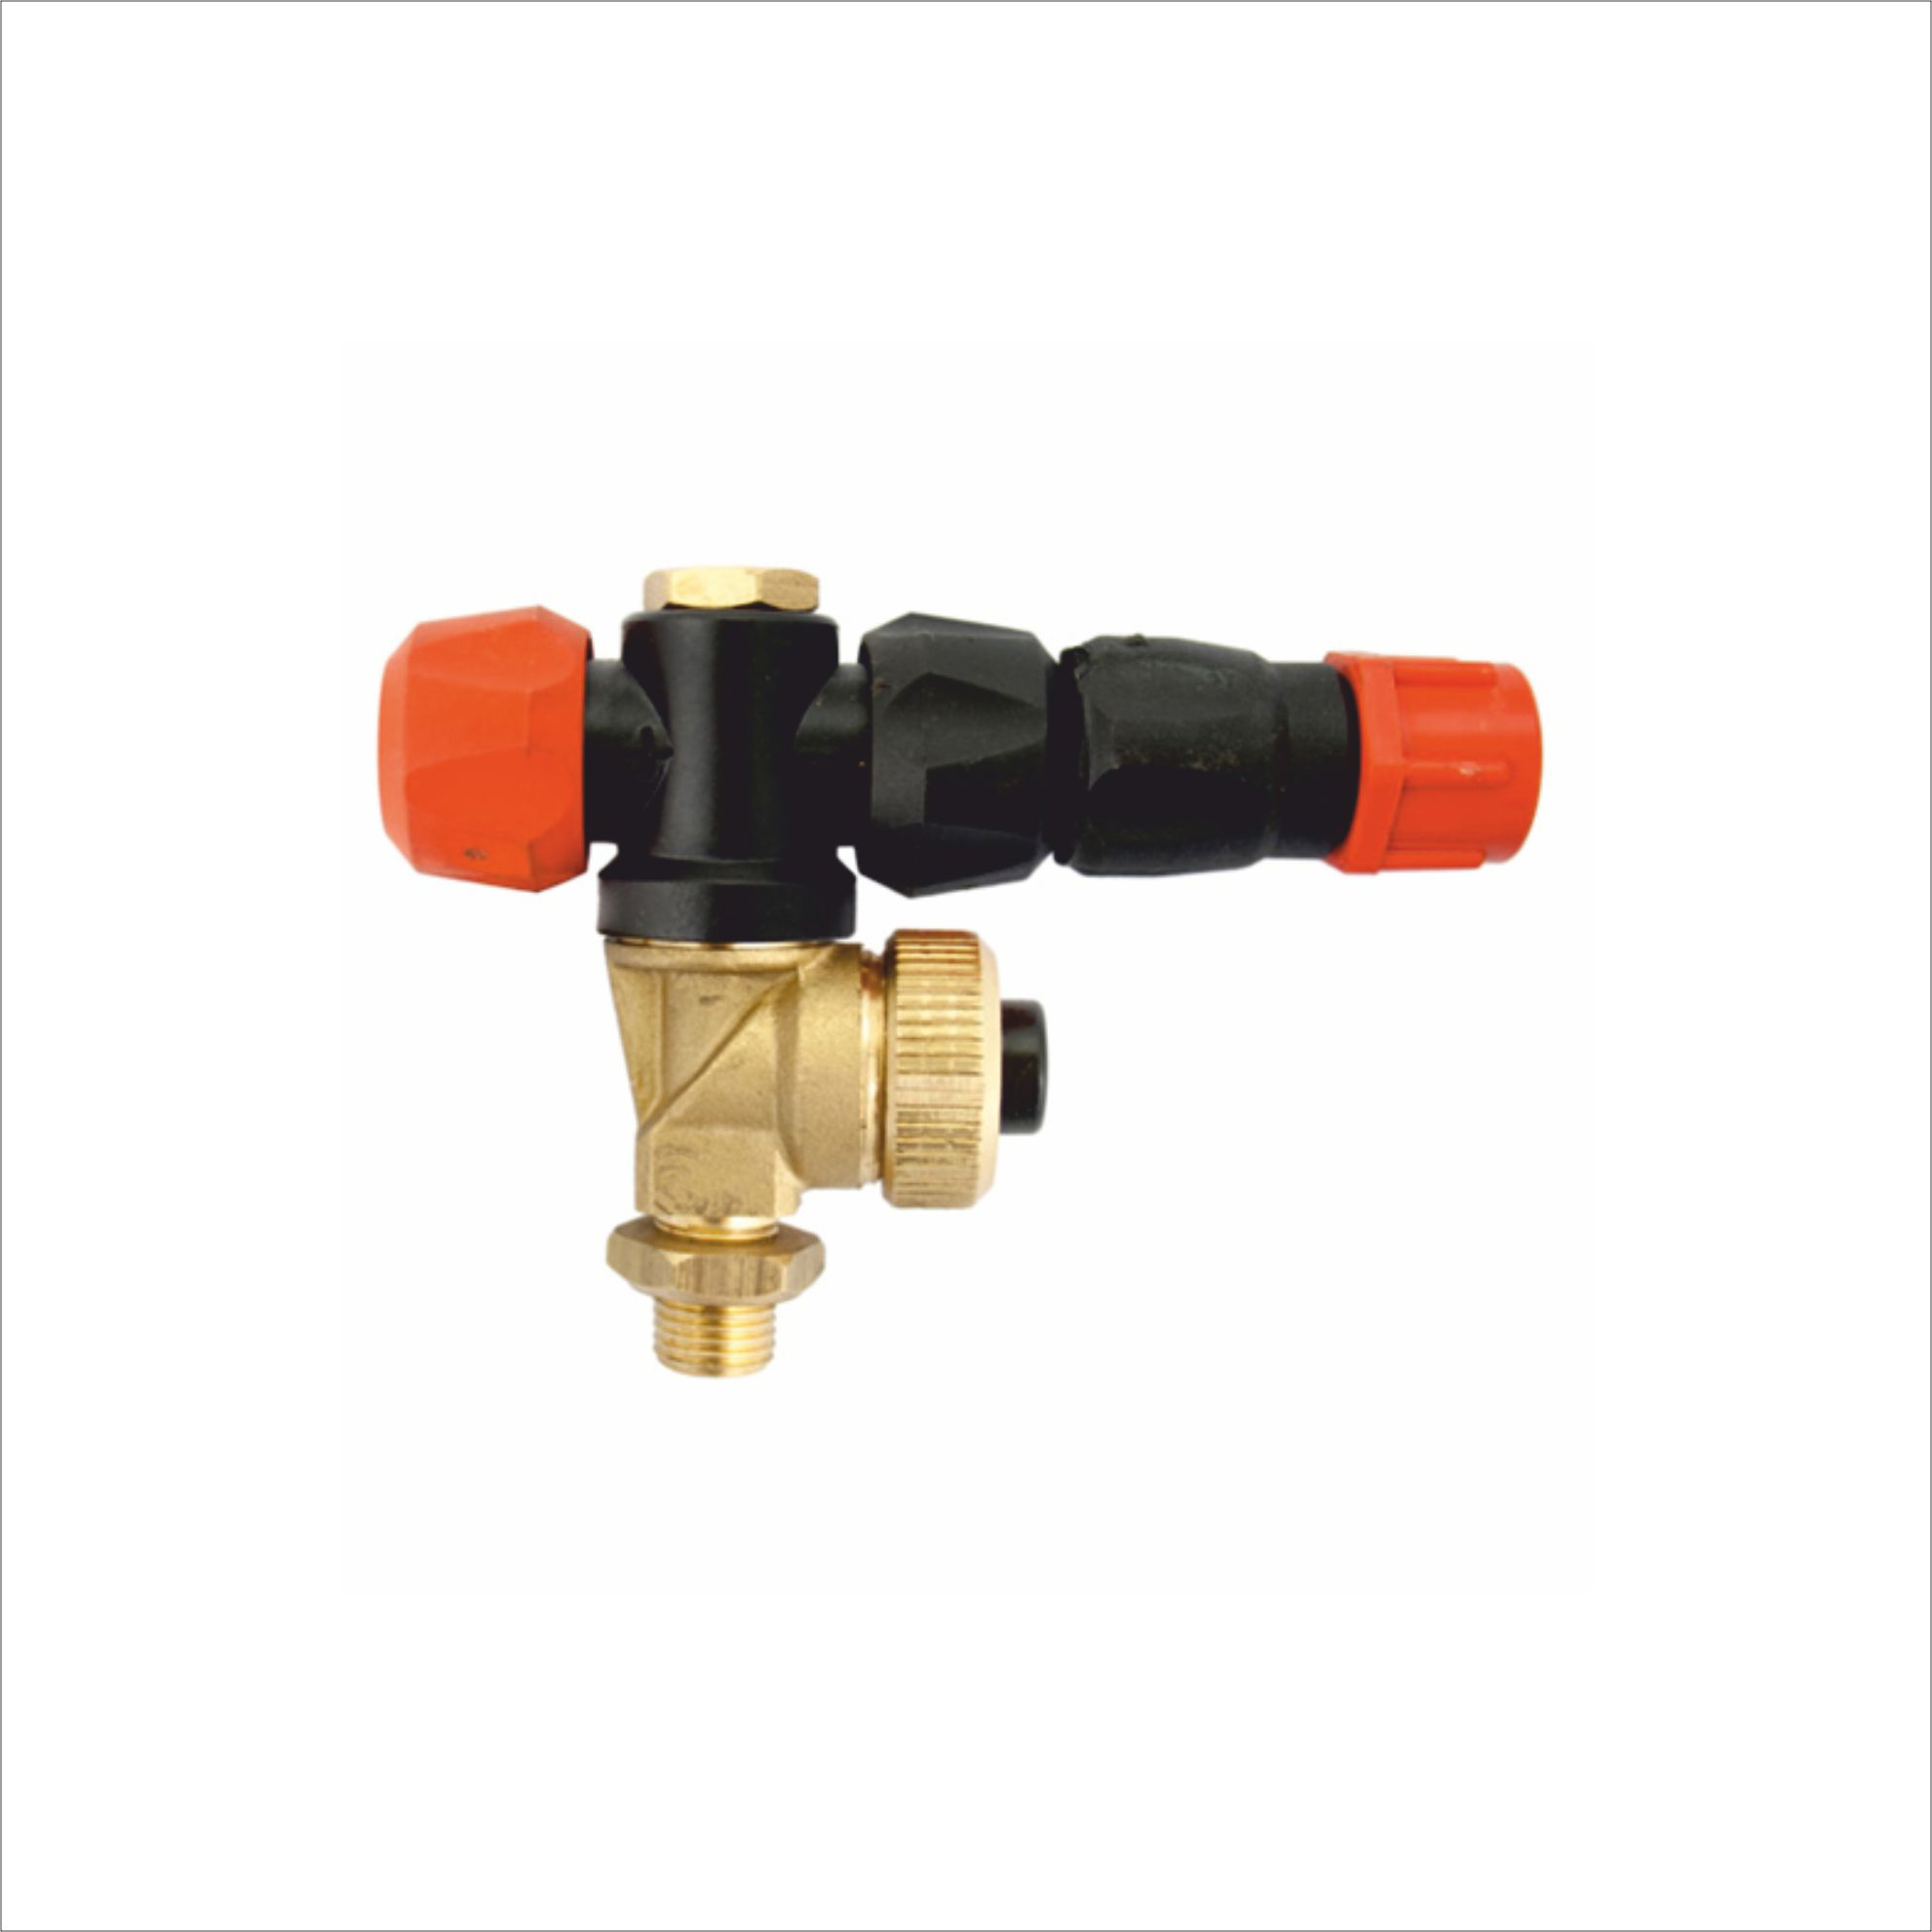 ADJUSTABLE NOZZLE FOR MISTBLOWER (WITH DIAPHRAGM CHECK VALVE)